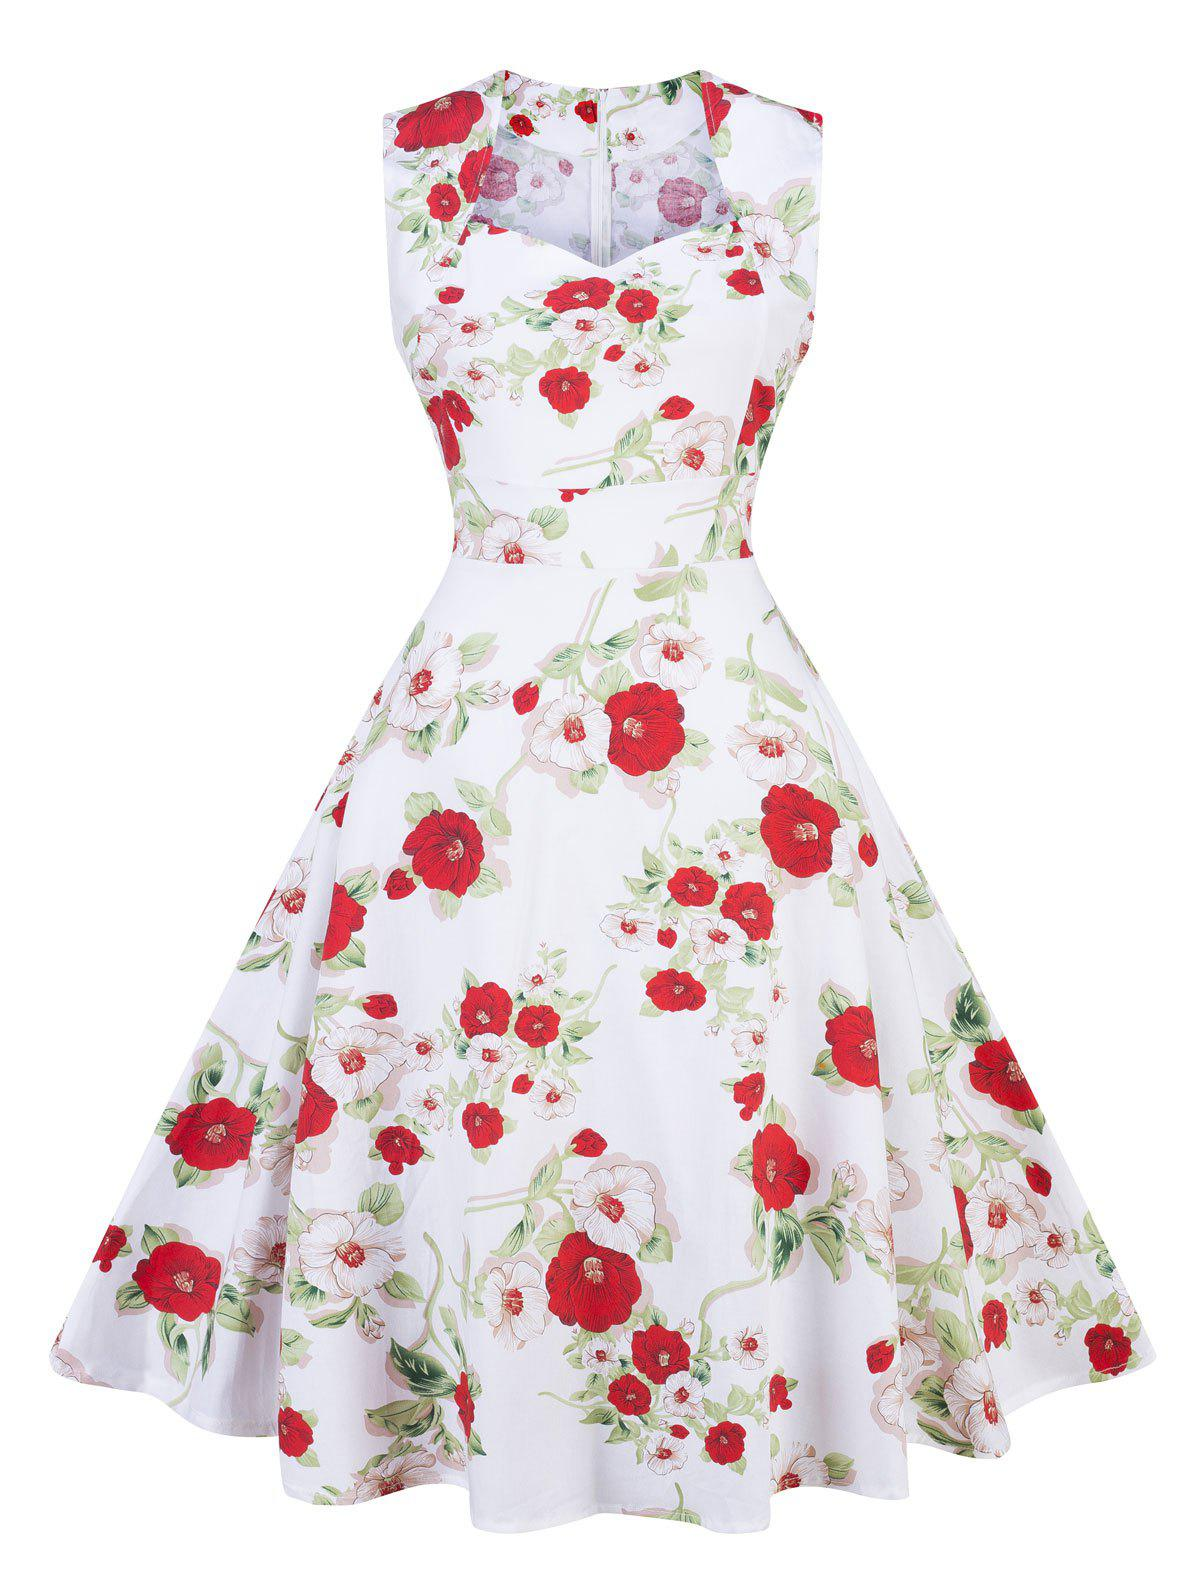 Vintage Floral Print Pin Up Party DressWOMEN<br><br>Size: XL; Color: WHITE; Style: Vintage; Material: Cotton,Polyester; Silhouette: A-Line; Dress Type: Fit and Flare Dress; Dresses Length: Knee-Length; Neckline: Sweetheart Neck; Sleeve Length: Sleeveless; Pattern Type: Floral; With Belt: No; Season: Fall,Spring; Weight: 0.3500kg; Package Contents: 1 x Dress;